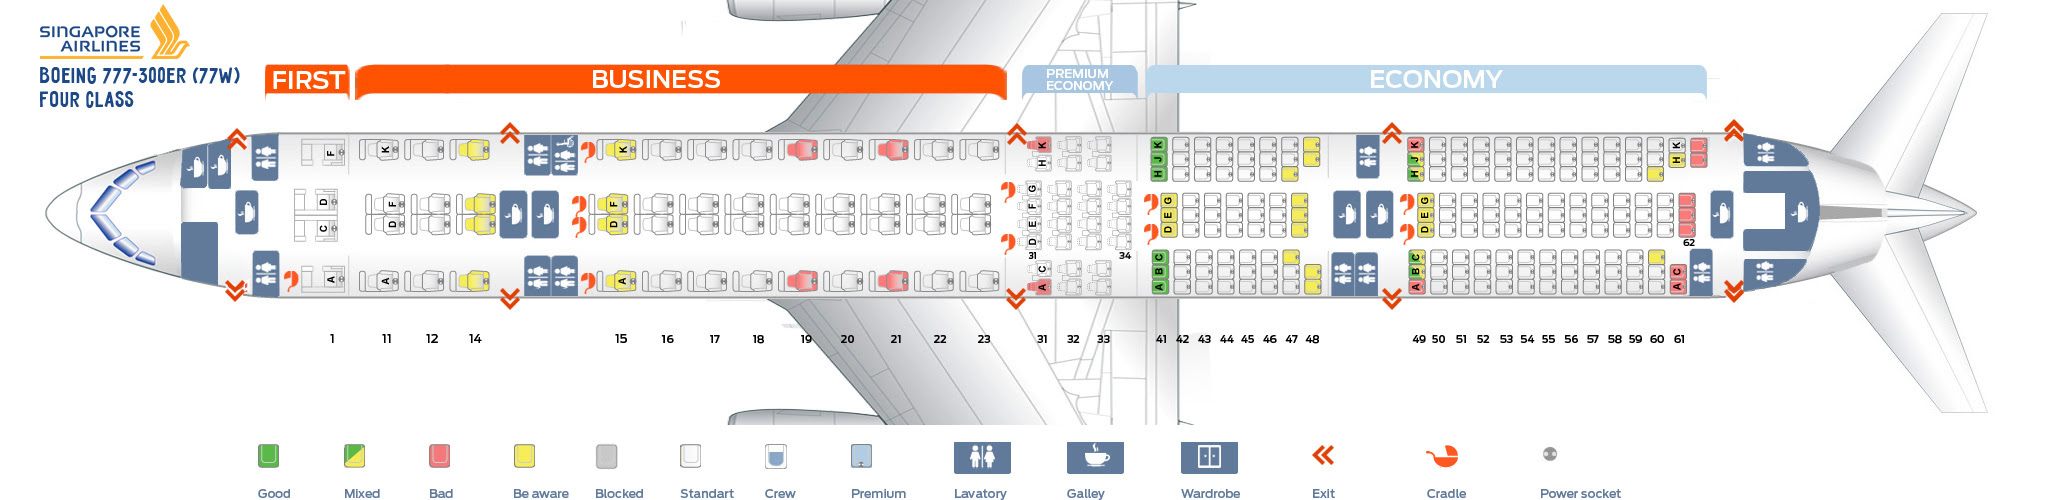 777 300er seat map cathay pacific Boeing 777 300er Seating Chart Gallery Of Chart 2019 777 300er seat map cathay pacific